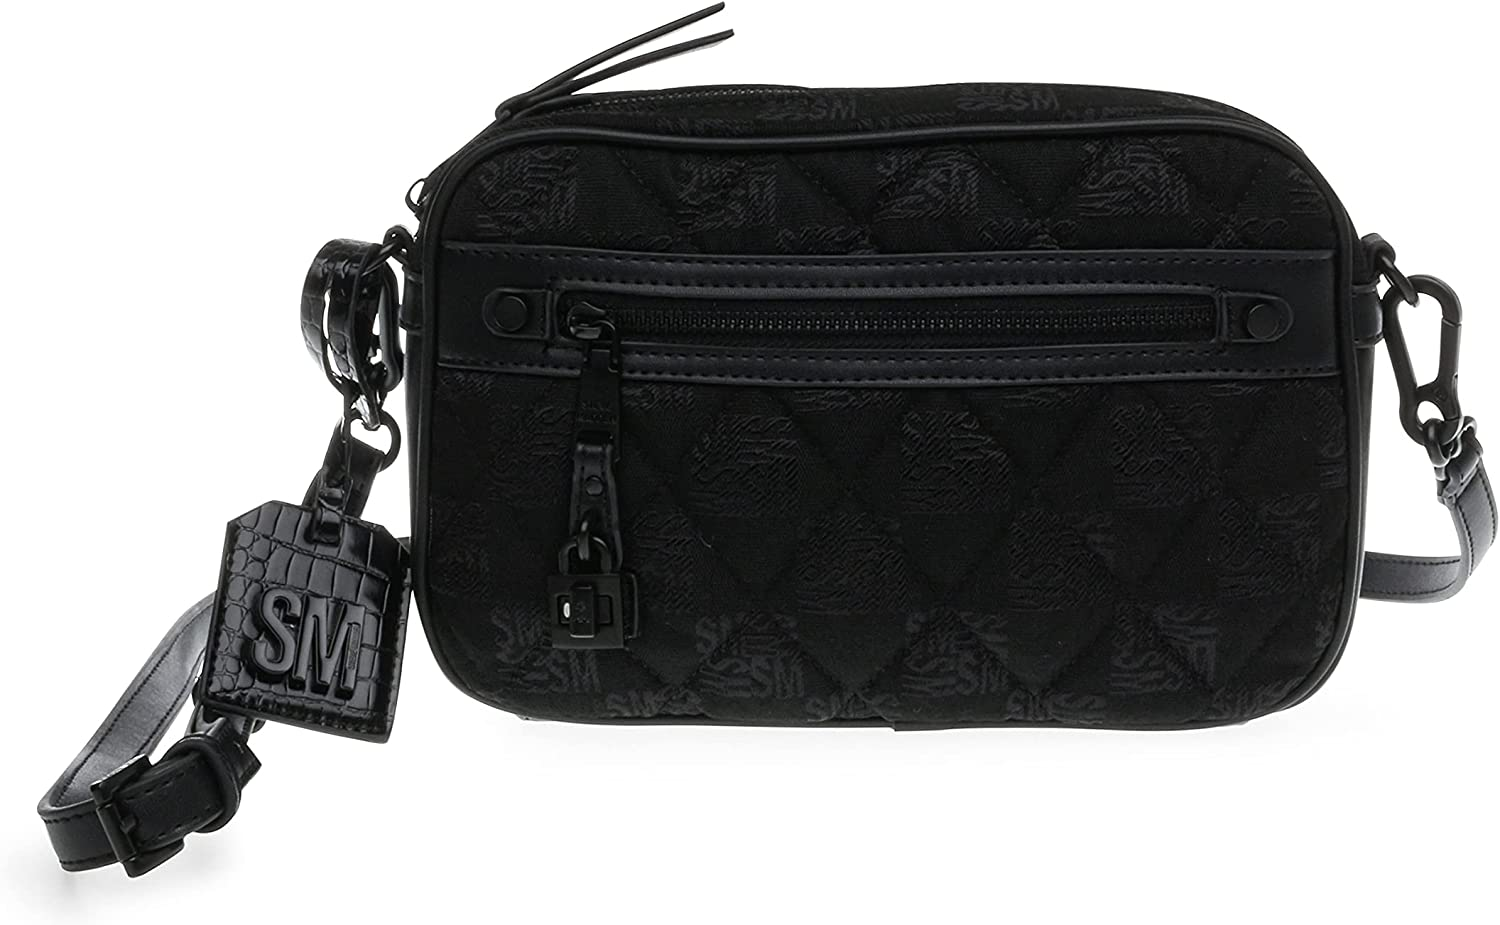 Max 90% OFF Steve Madden Jacey Quilted High quality new Bag Camera Black